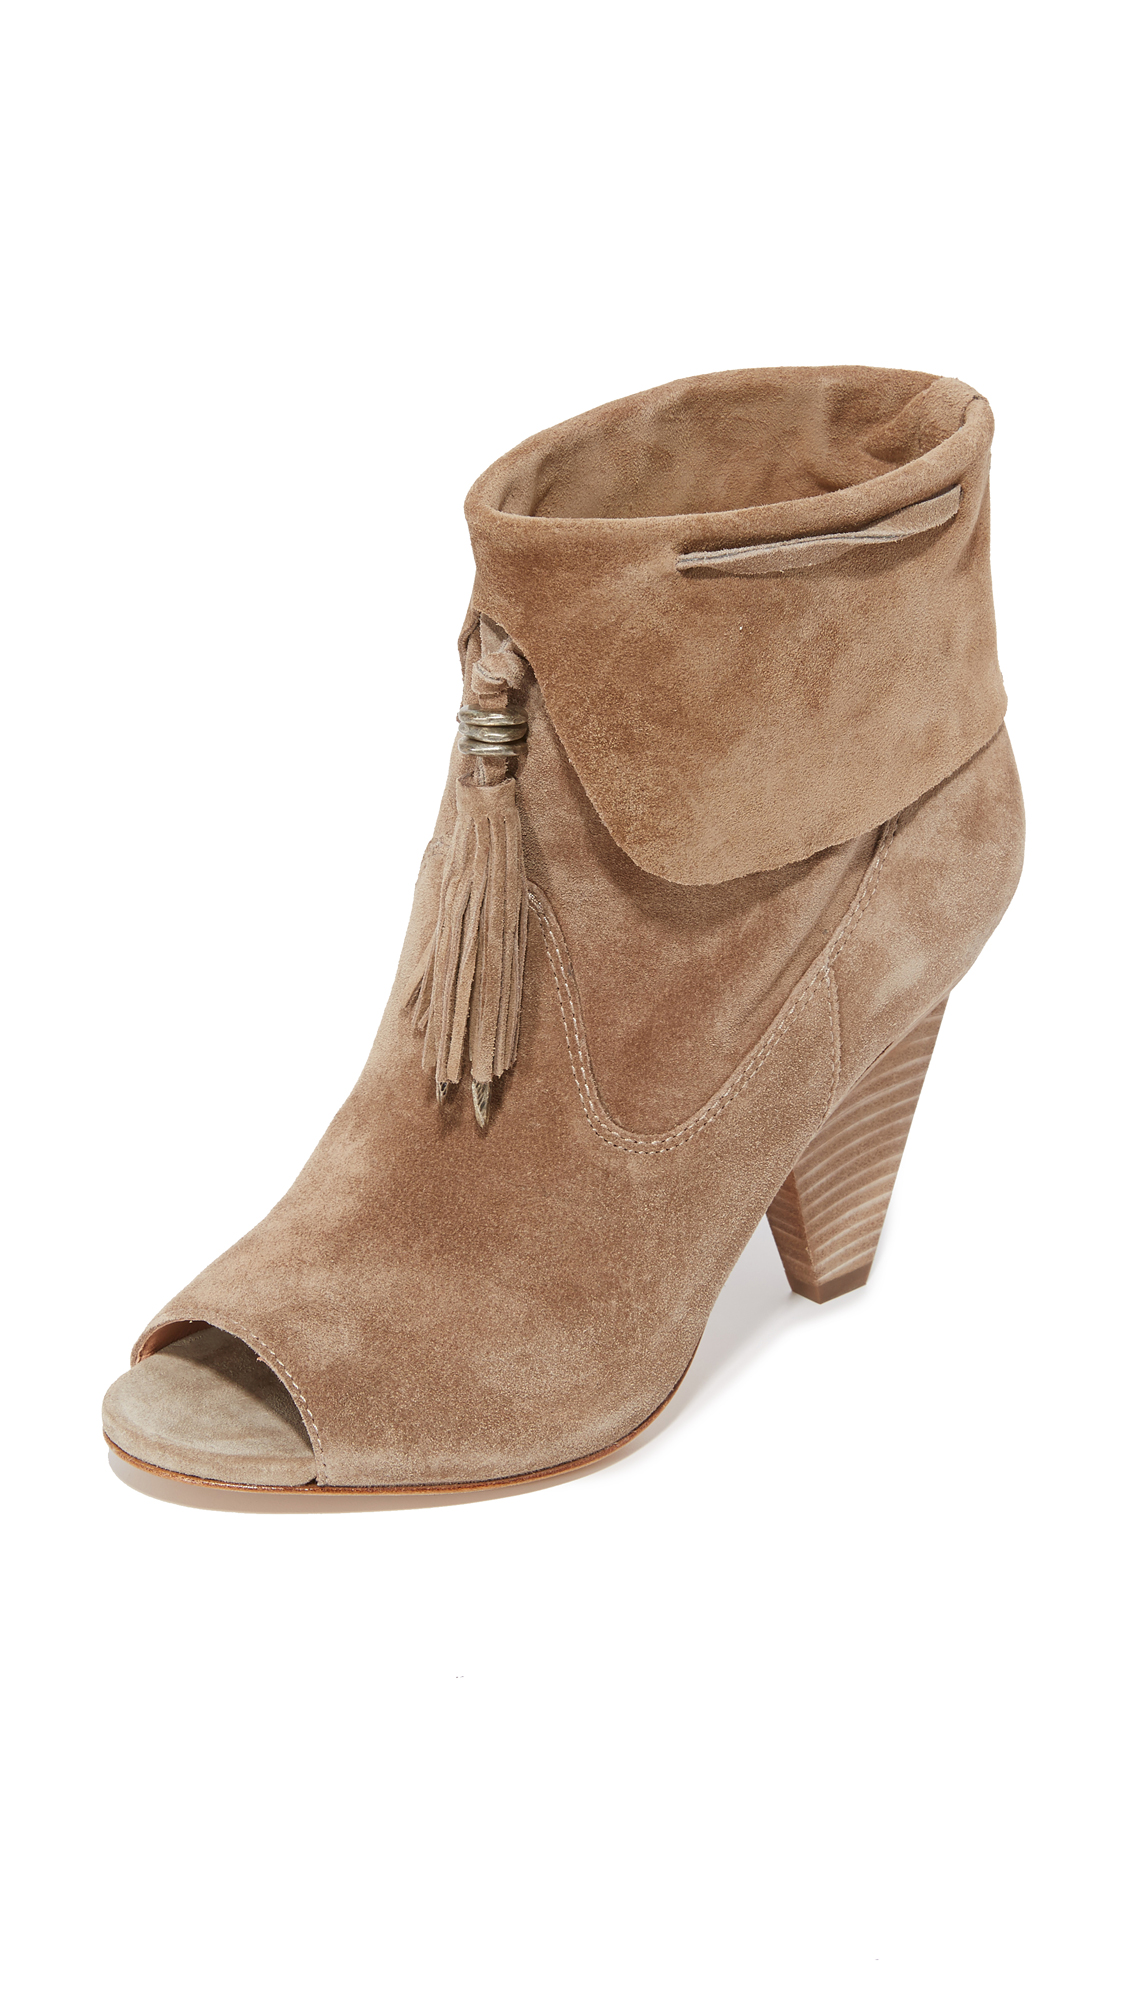 Sigerson Morrison Faro Open Toe Booties - Cloud